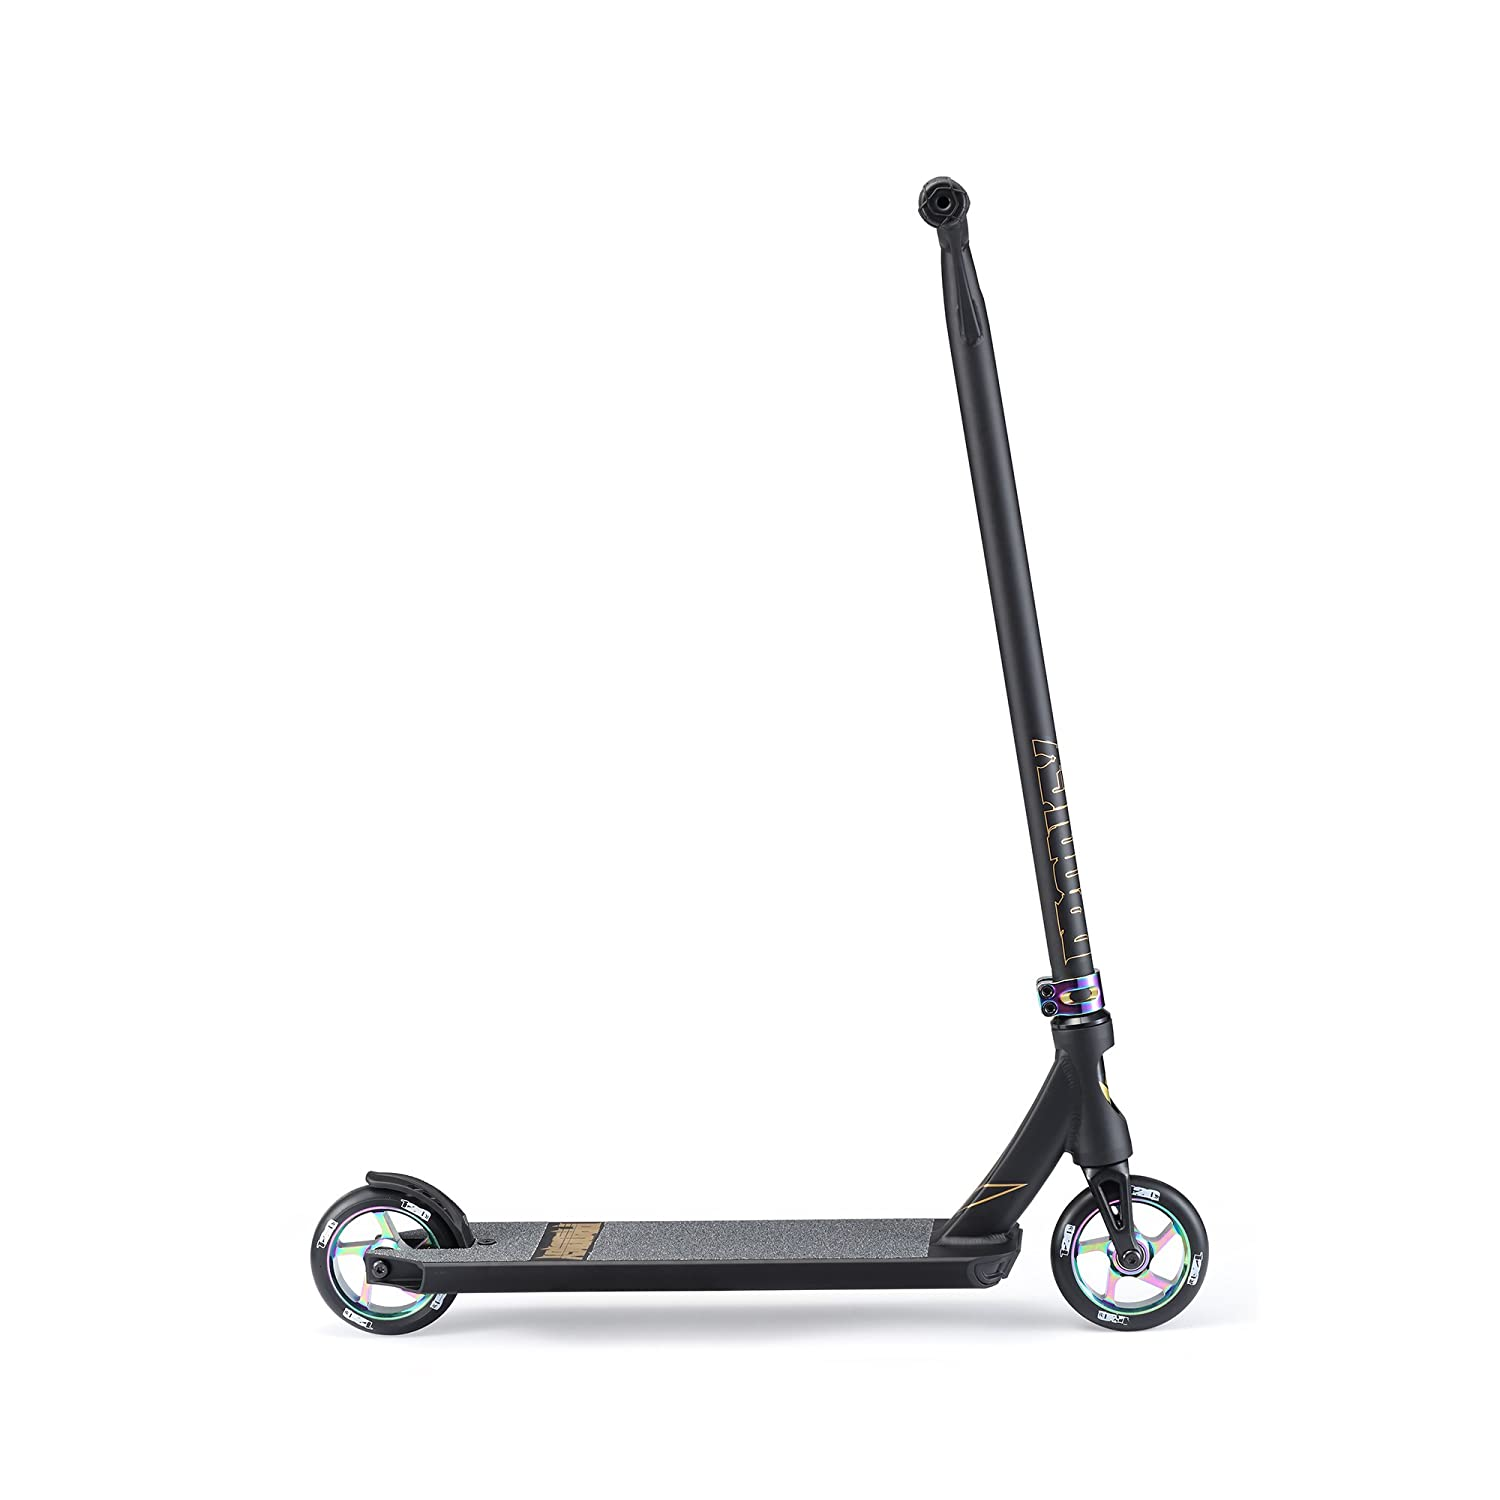 Amazon.com: Envy S5 Prodigy Scooter: Sports & Outdoors